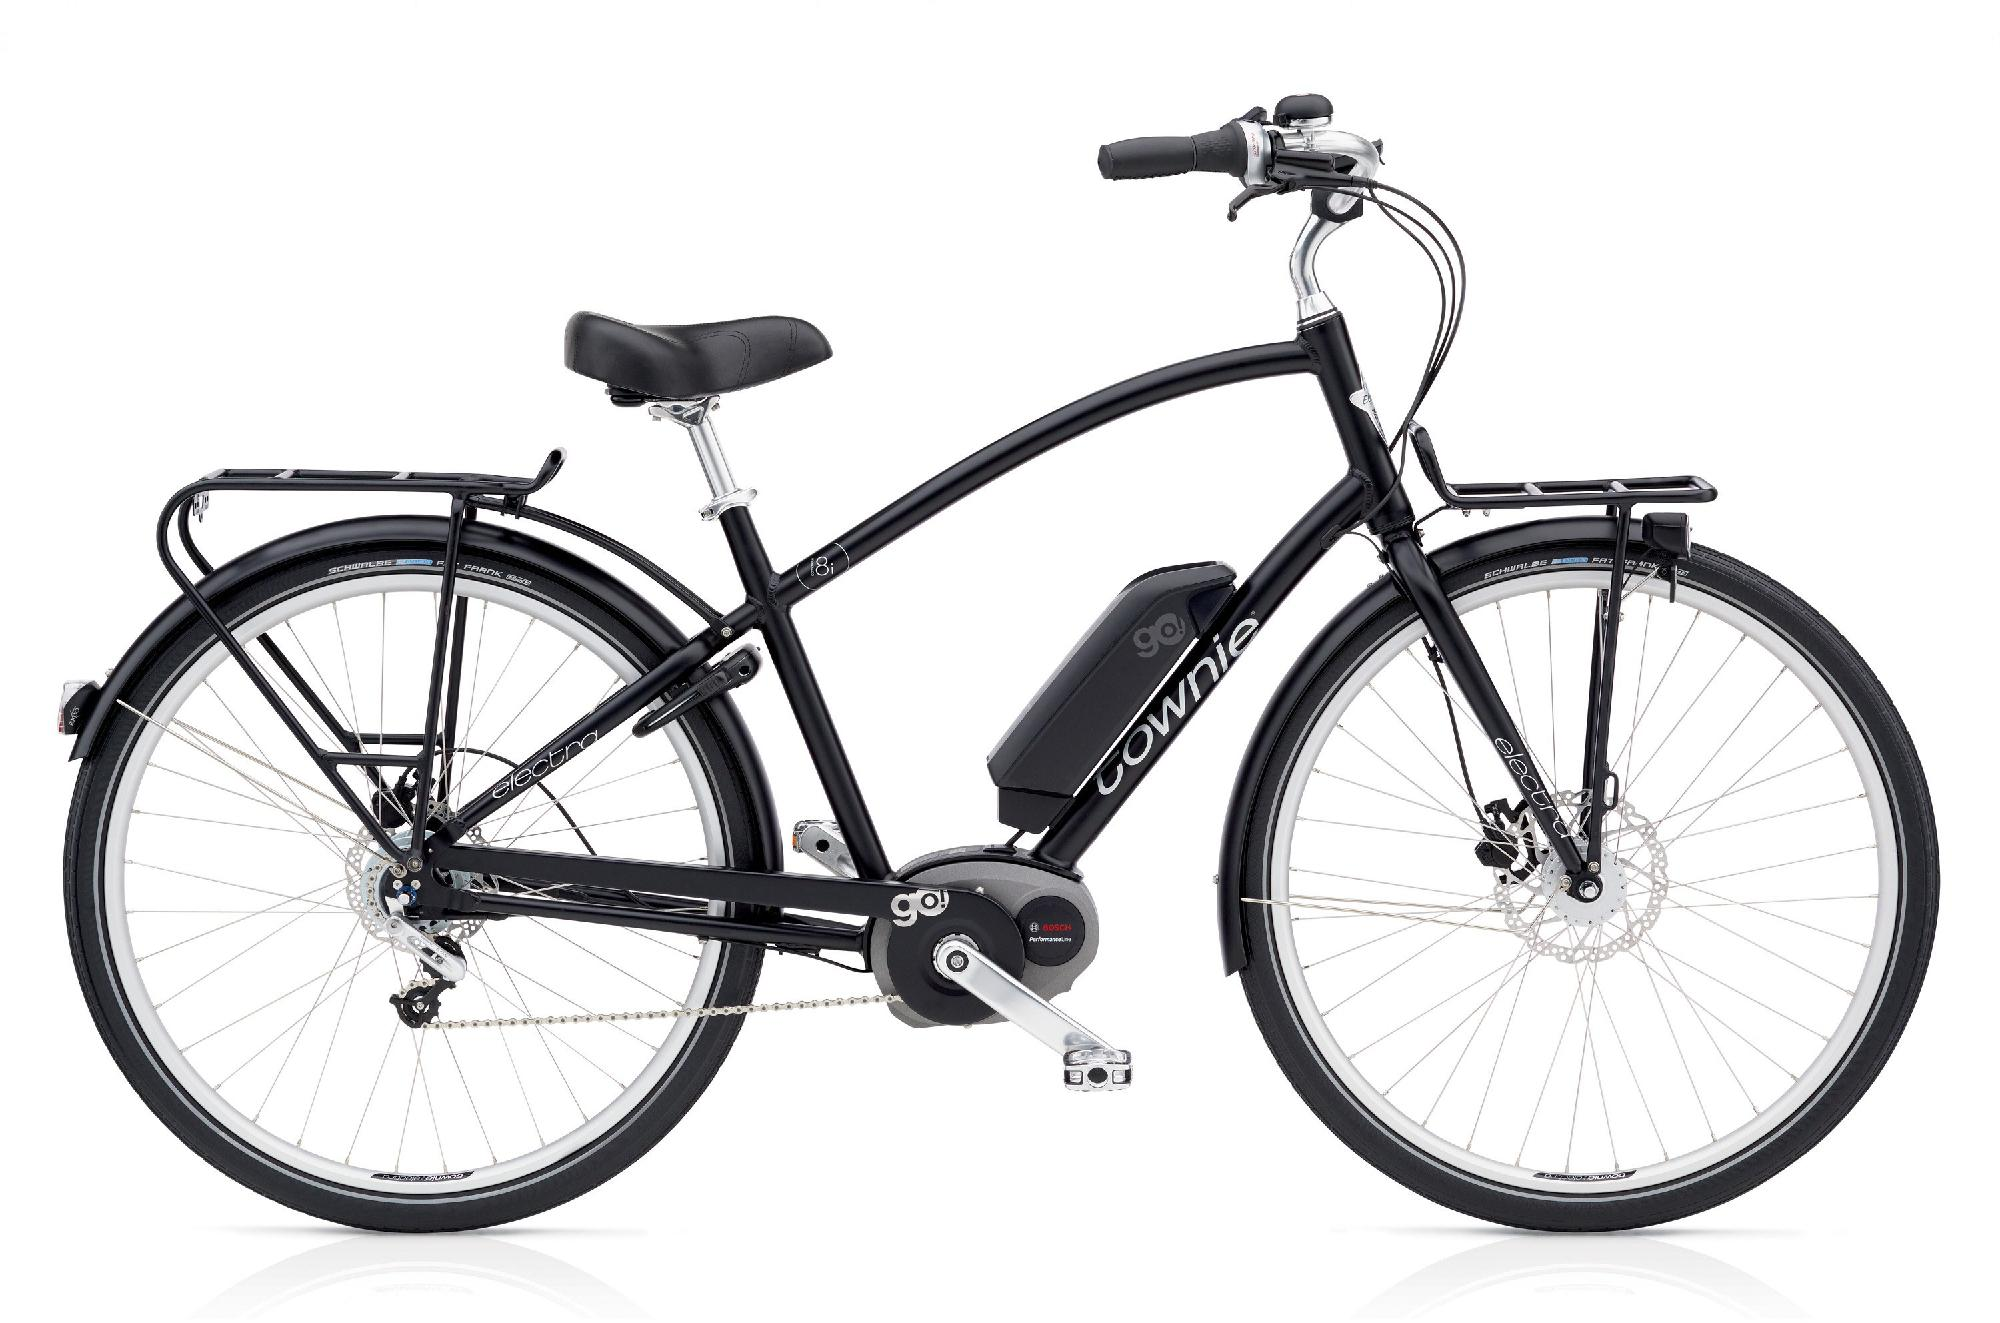 Electra Townie Commute GO! 8i Bike